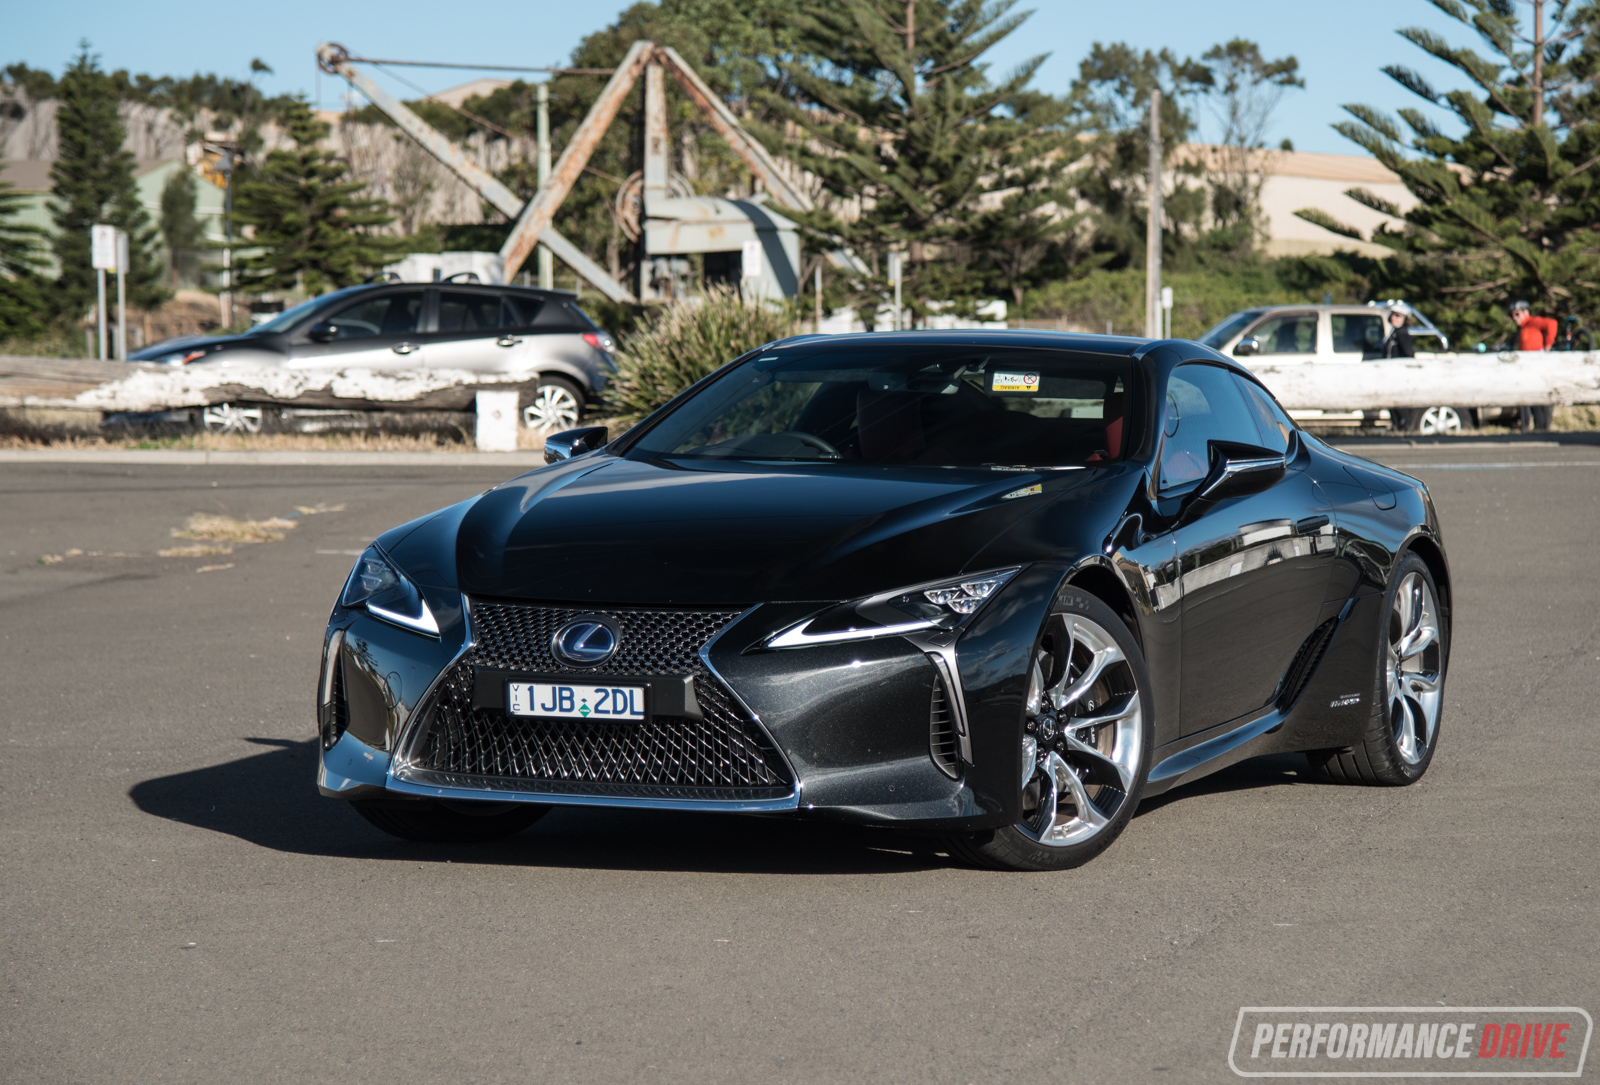 Lexus Rc F 2017 >> 2017 Lexus LC 500h review (video) | PerformanceDrive